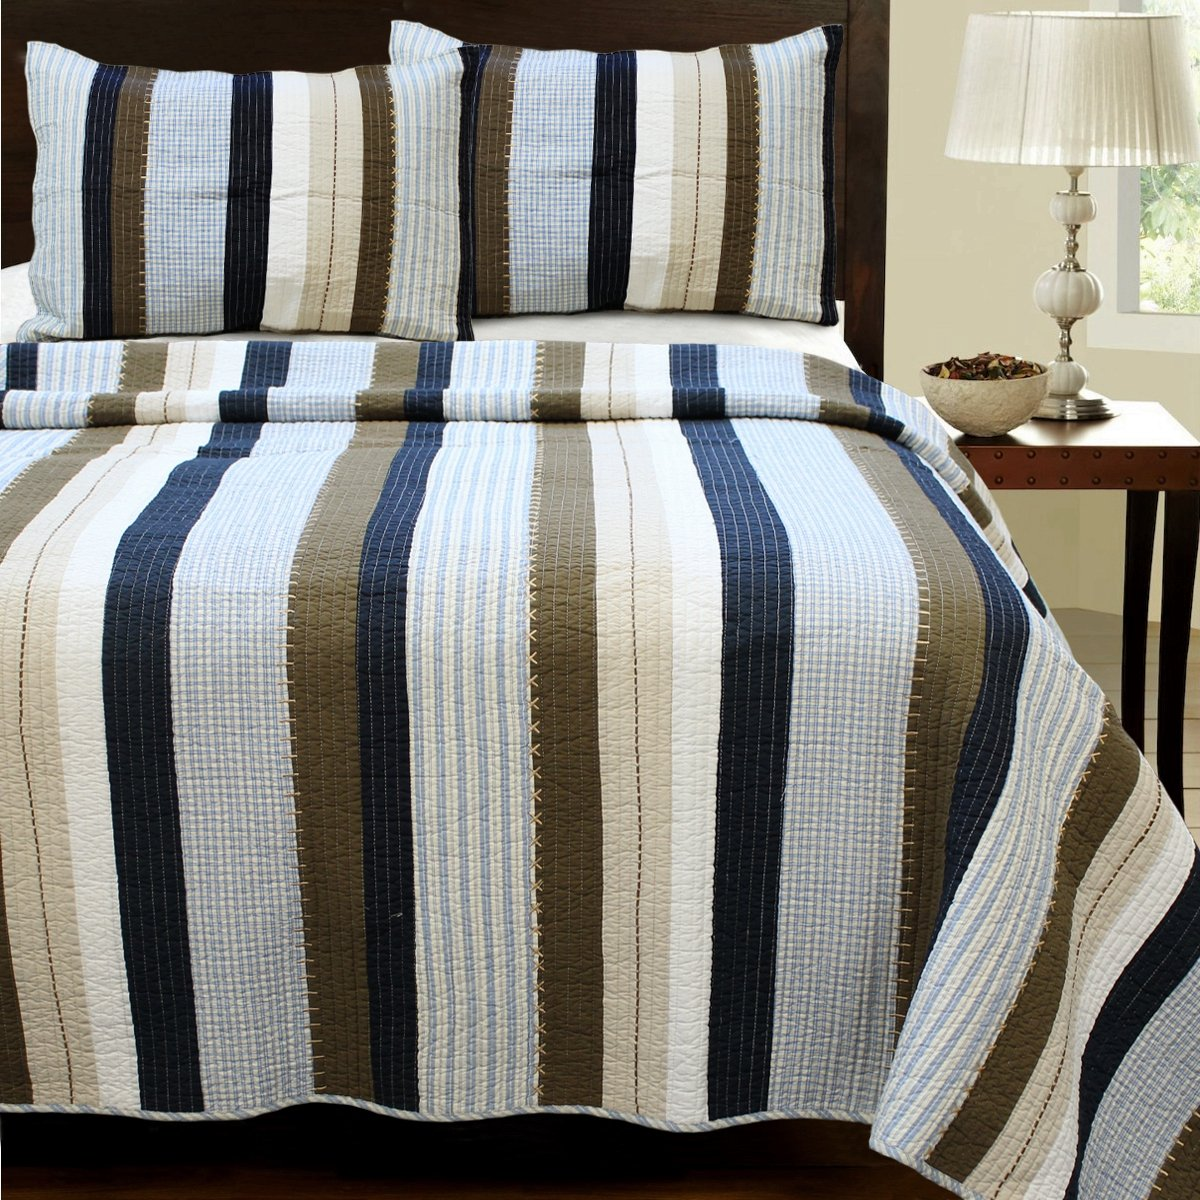 Cozy Line Home Fashions Nathan Quilt Bedding Set, Navy/Blue/White/Brown Plaid Striped 100% Cotton, Reversible Coverlet, Bedspread Set, Gifts for Boy/Men/Him(Nathan Patchwork, Queen -3 piece)